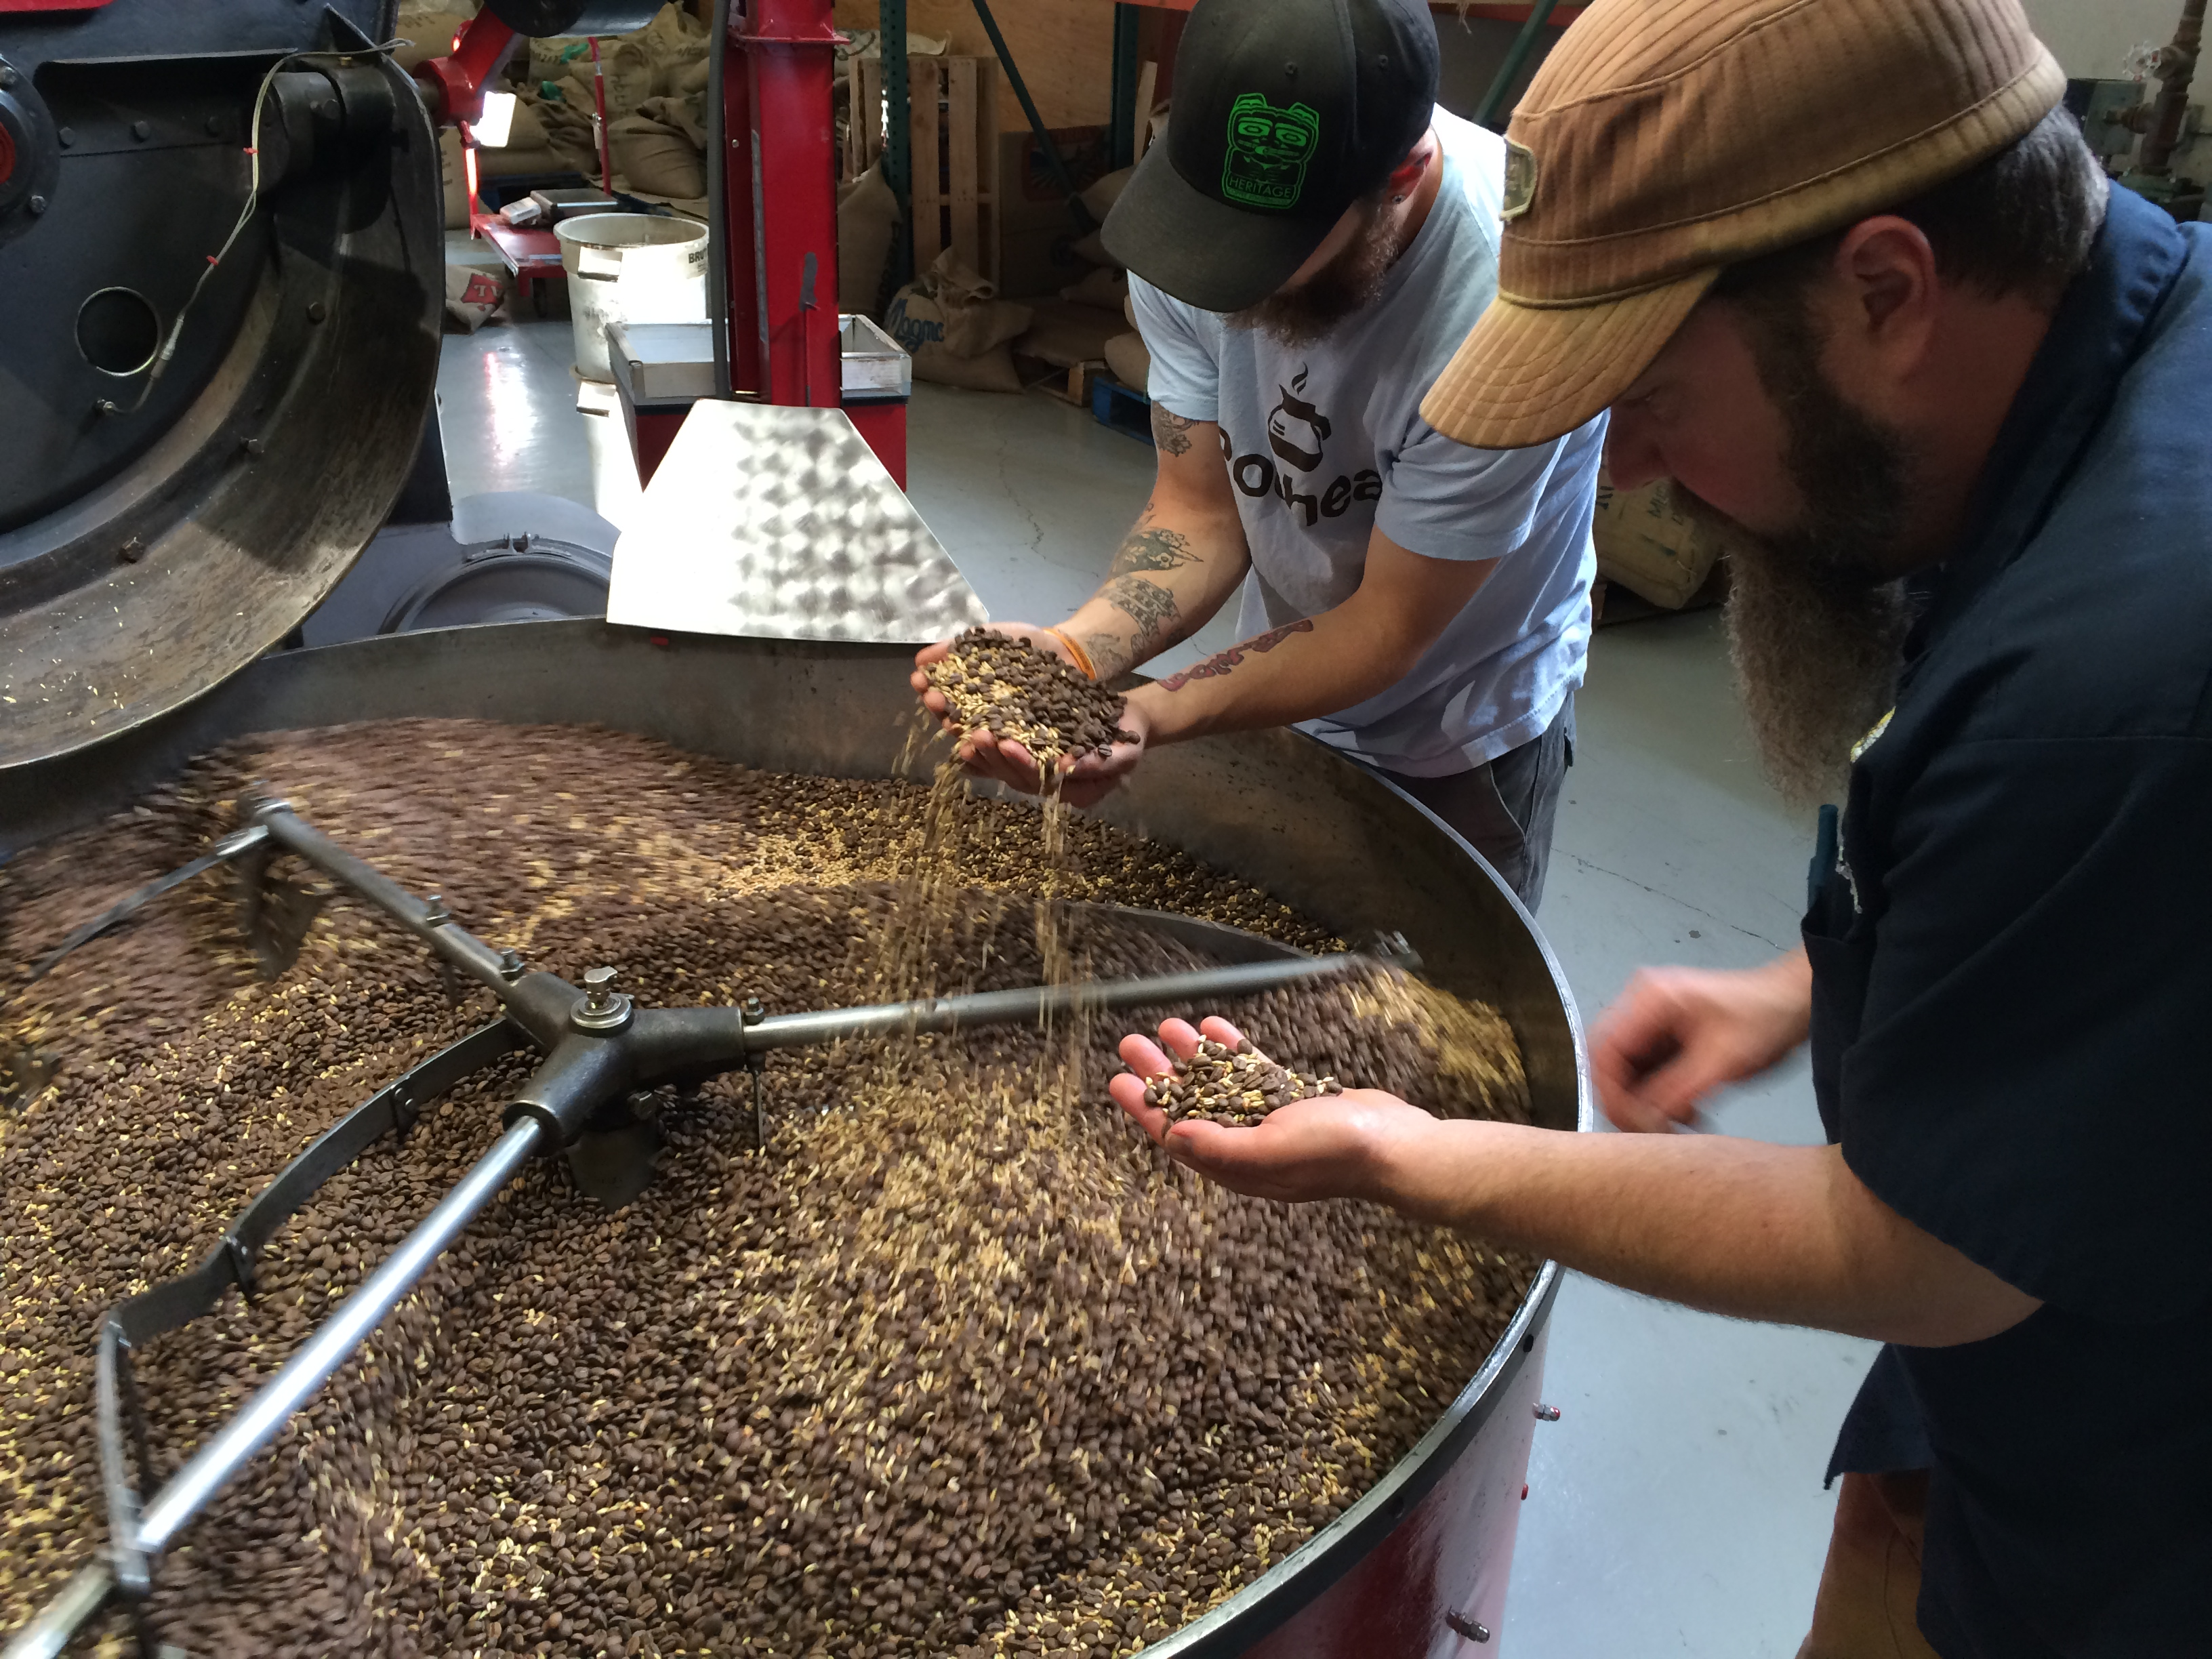 The roasted coffee beans from Juneau-based Heritage Coffee Roasting Company that goes into make Alaskan Heritage Coffee Brown Ale. (image courtesy of Alaskan Brewing)